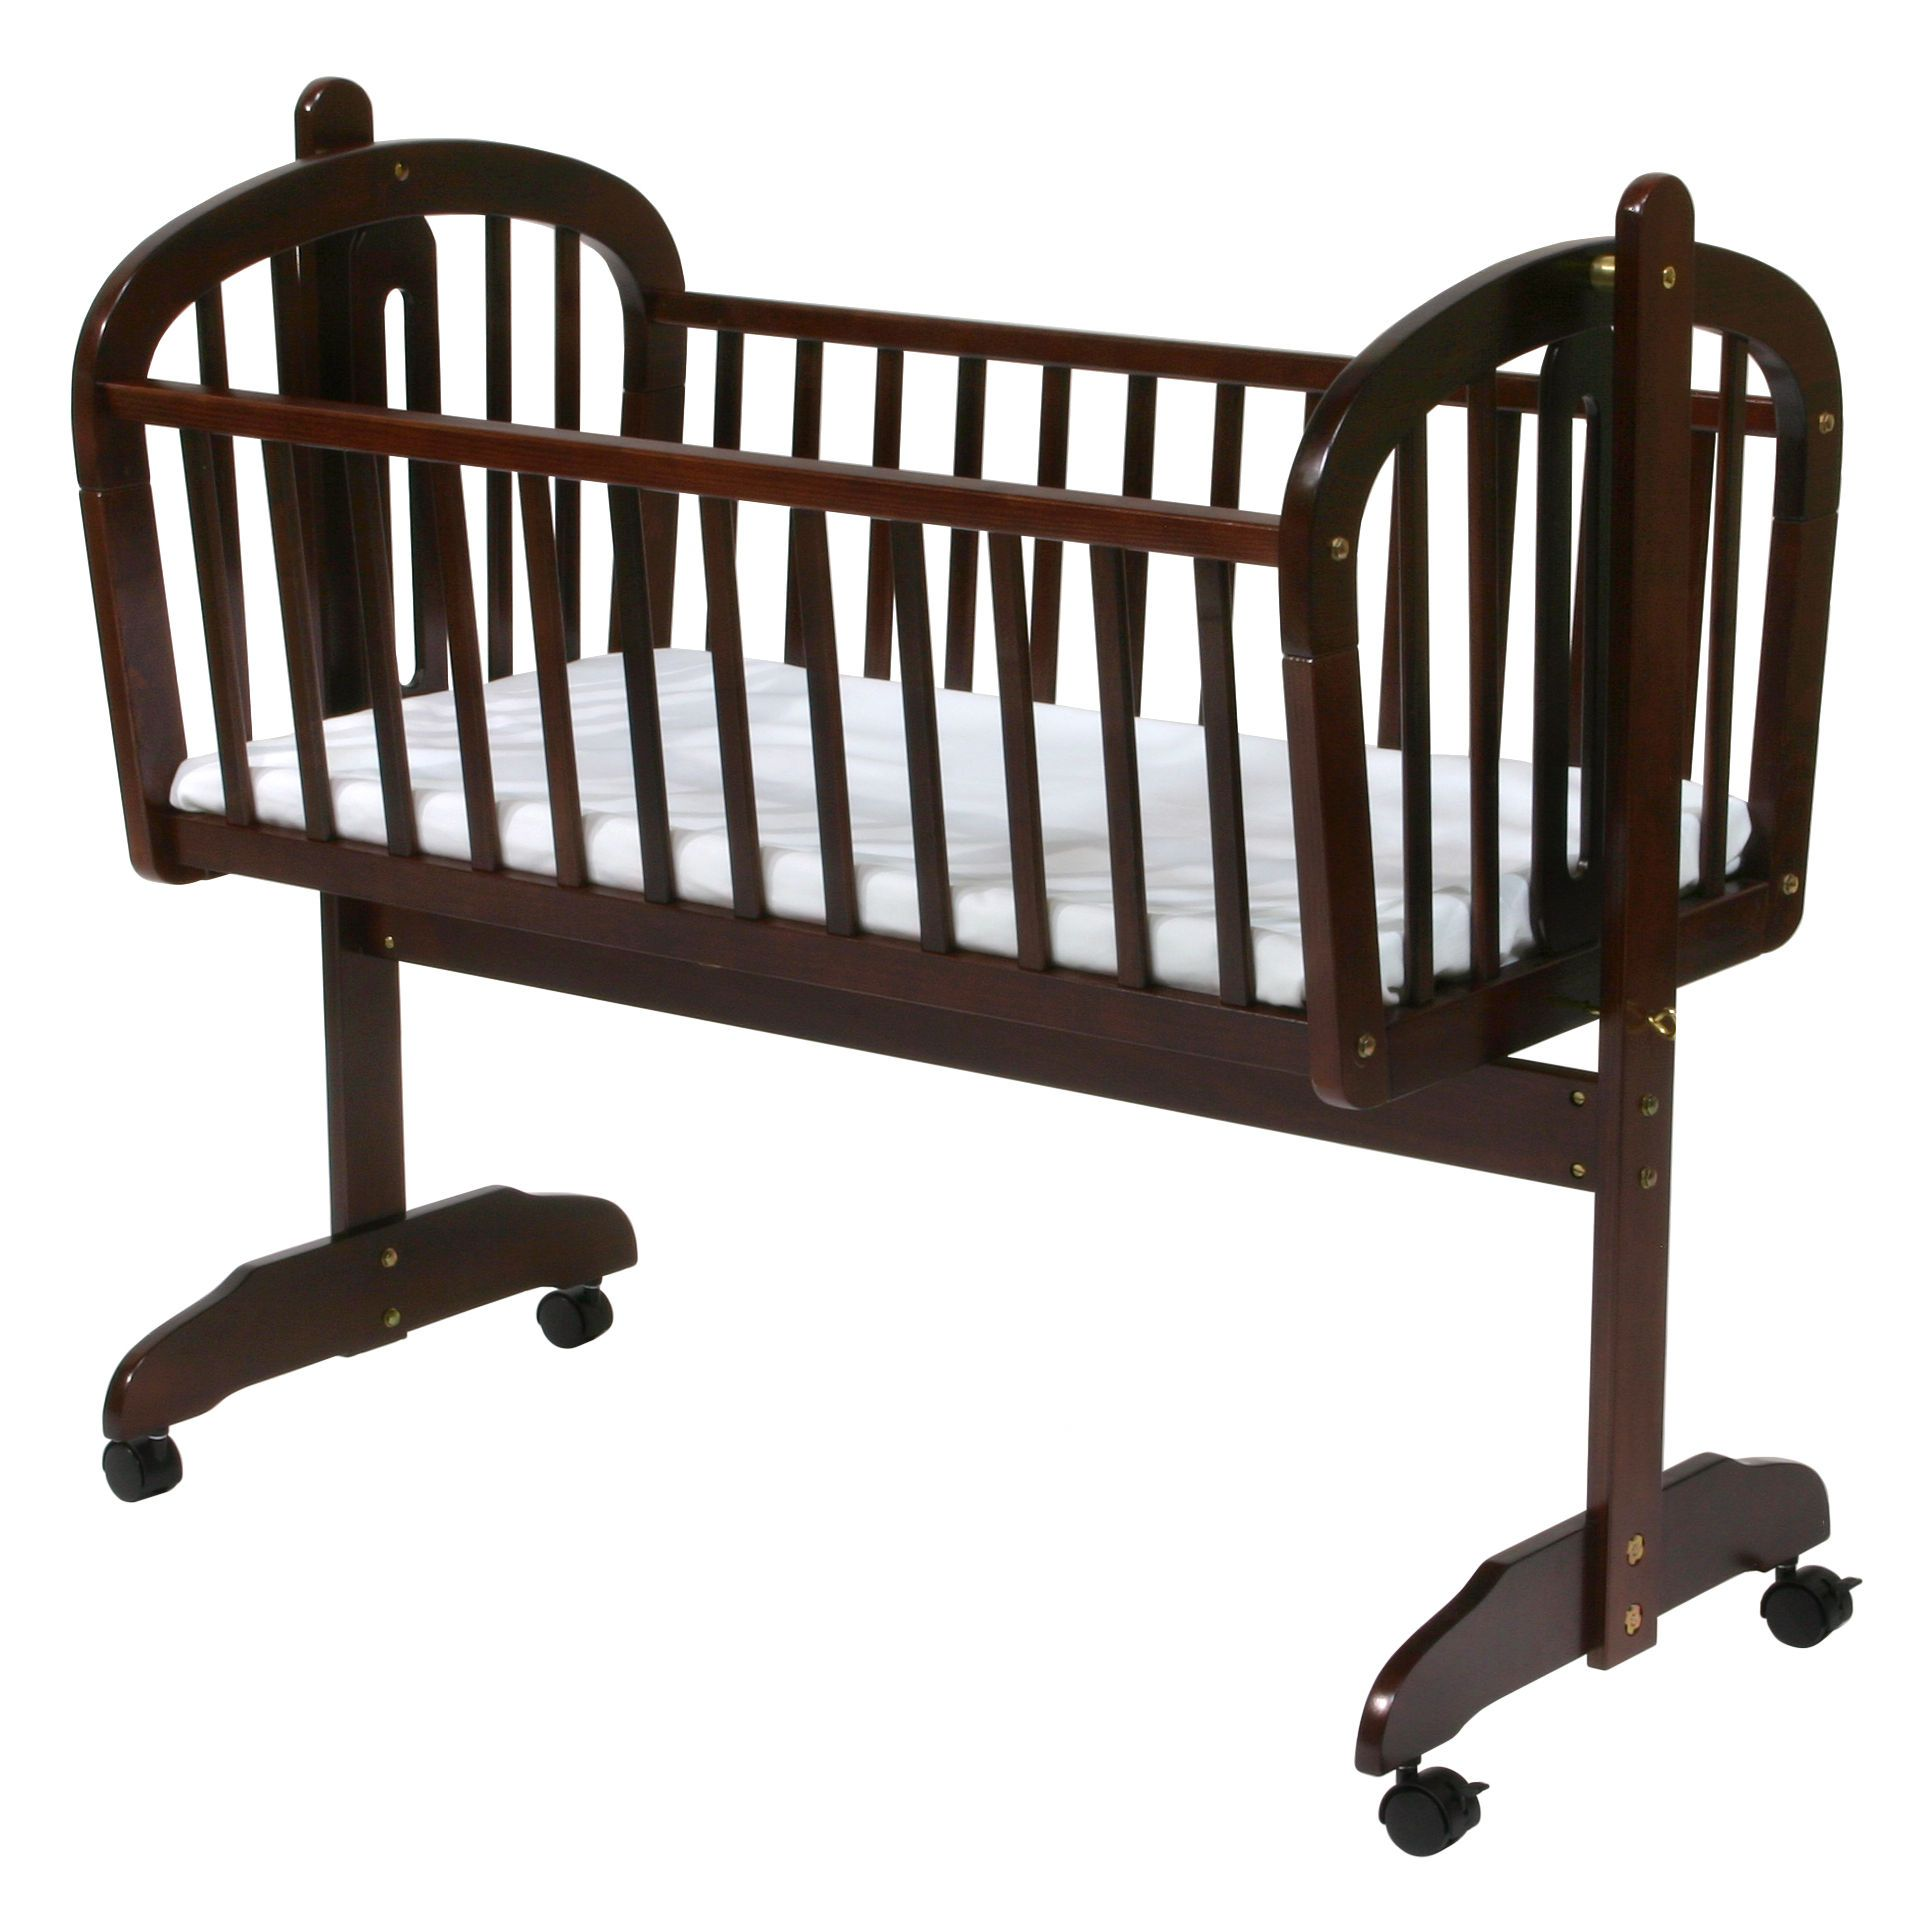 Davinci Futura Rocking Cradle With Wheels Bcd Baby Cradle Wooden